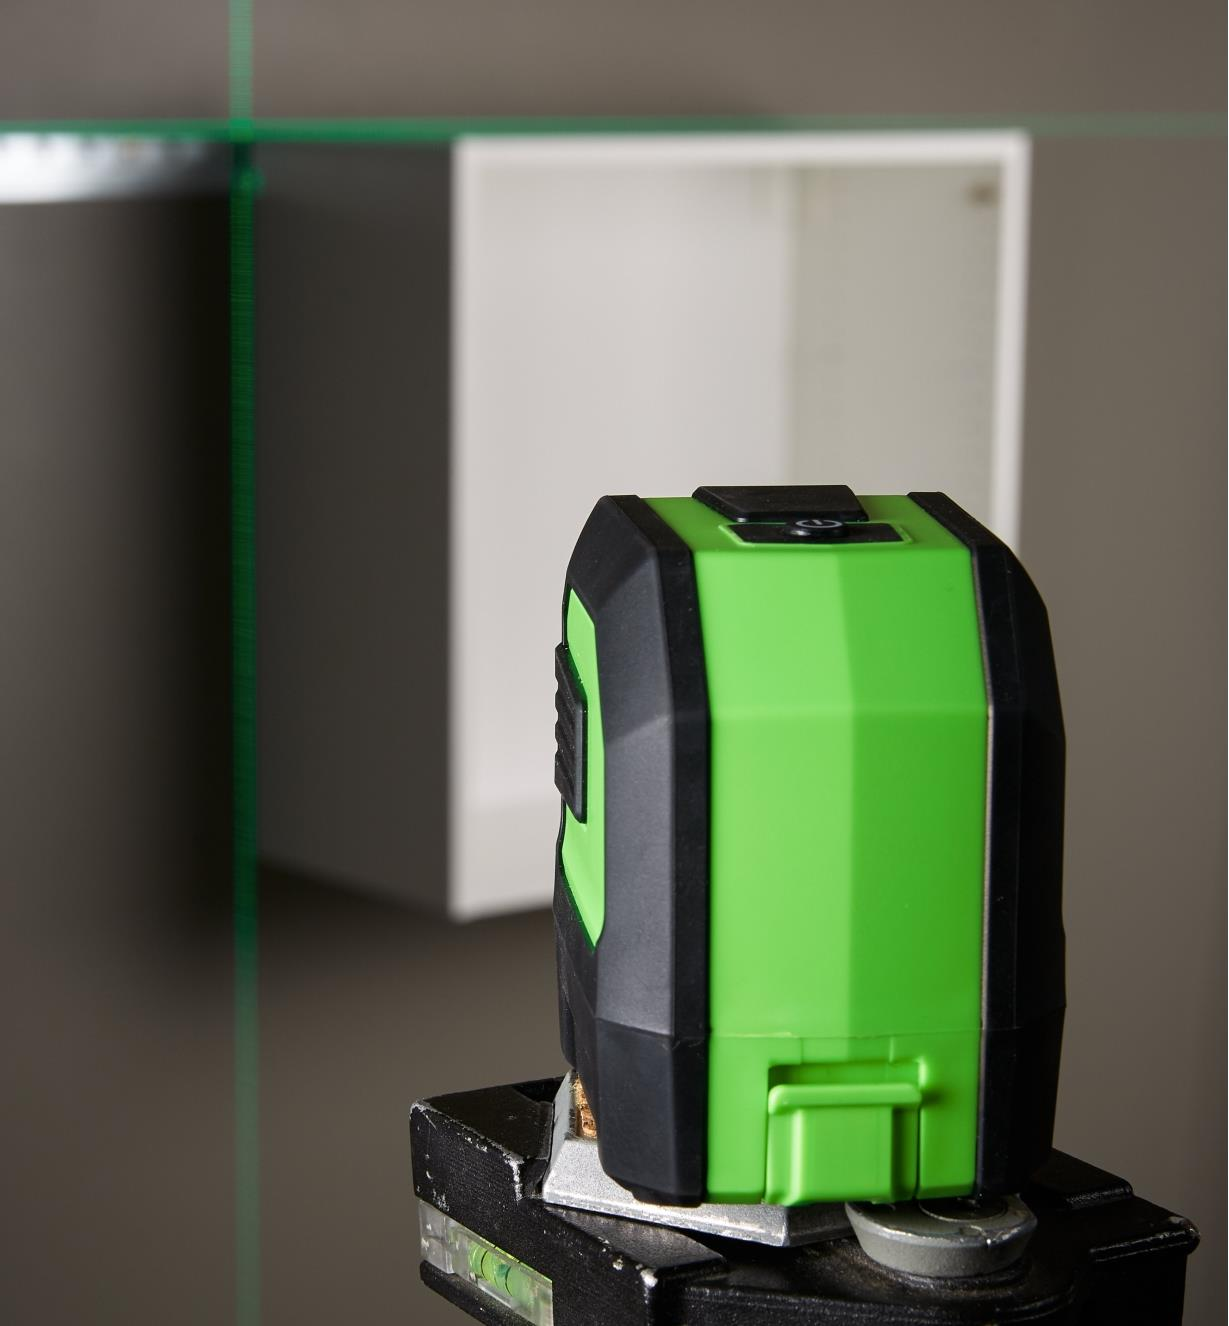 Back view of the green crosshair laser level with its projected beam showing that an installed wall cabinet is level and plumb